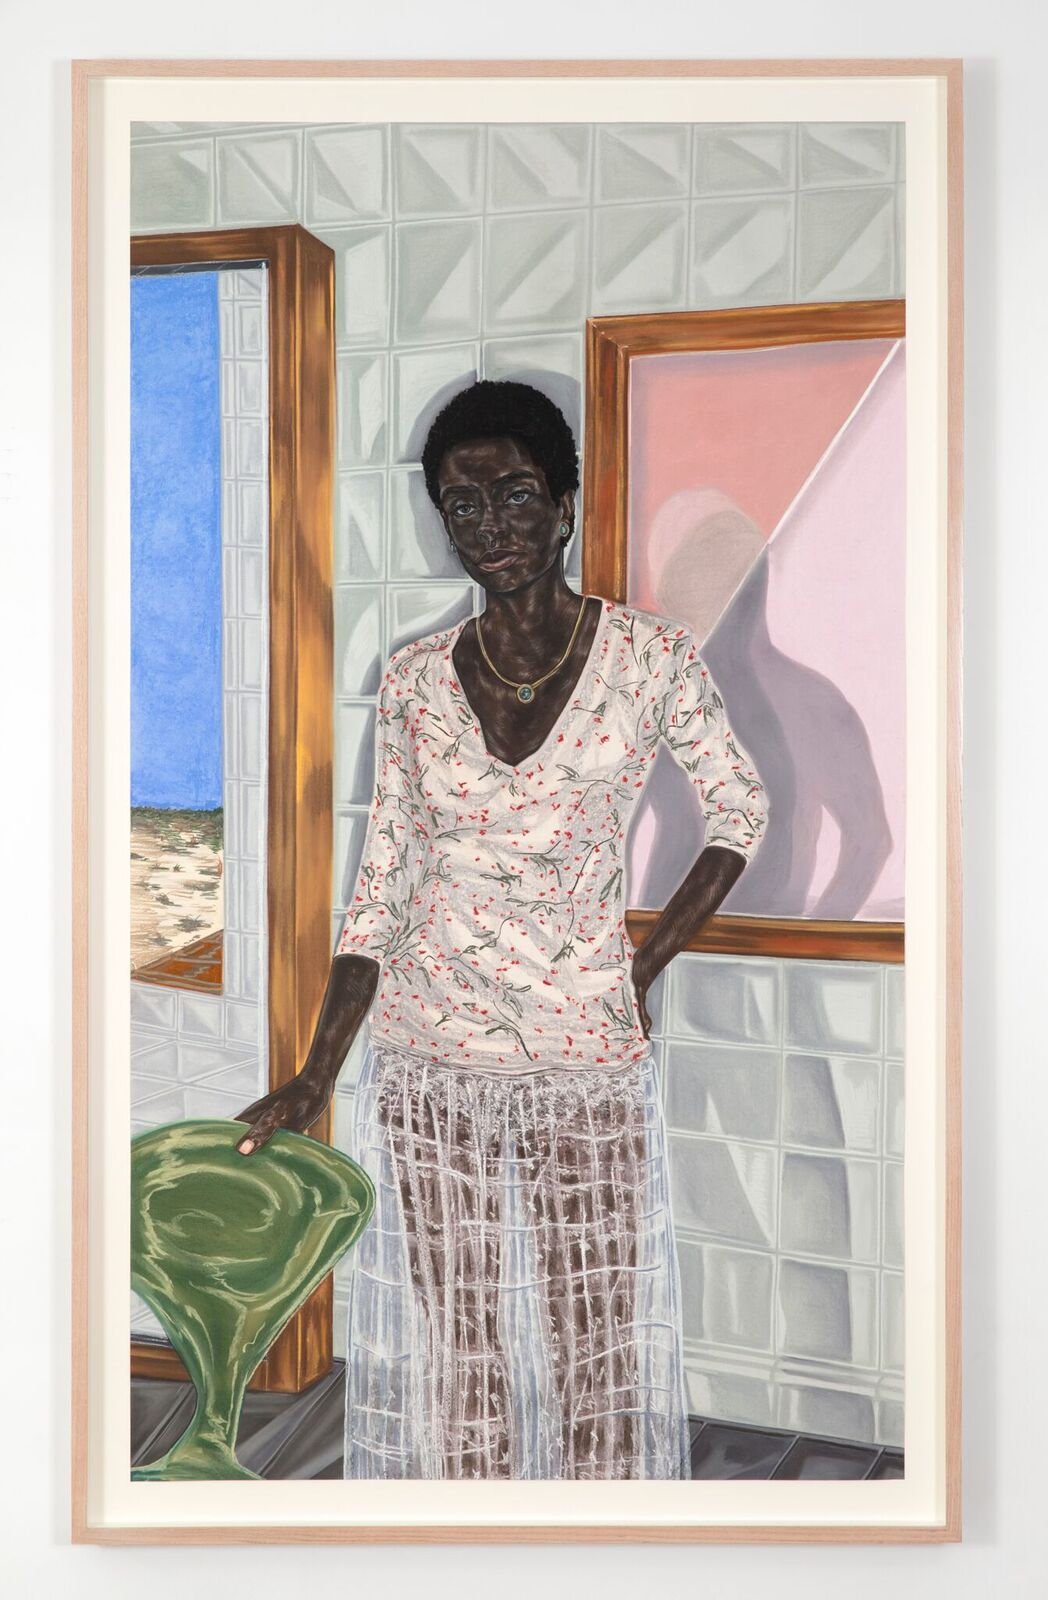 Toyin Ojih Odutola (b. 1985),Pregnant, 2017. Charcoal, pastel and pencil on paper, 74 1/2 x 42 in. ©Toyin Ojih Odutola. Courtesy of the artist and Jack Shainman Gallery, New York